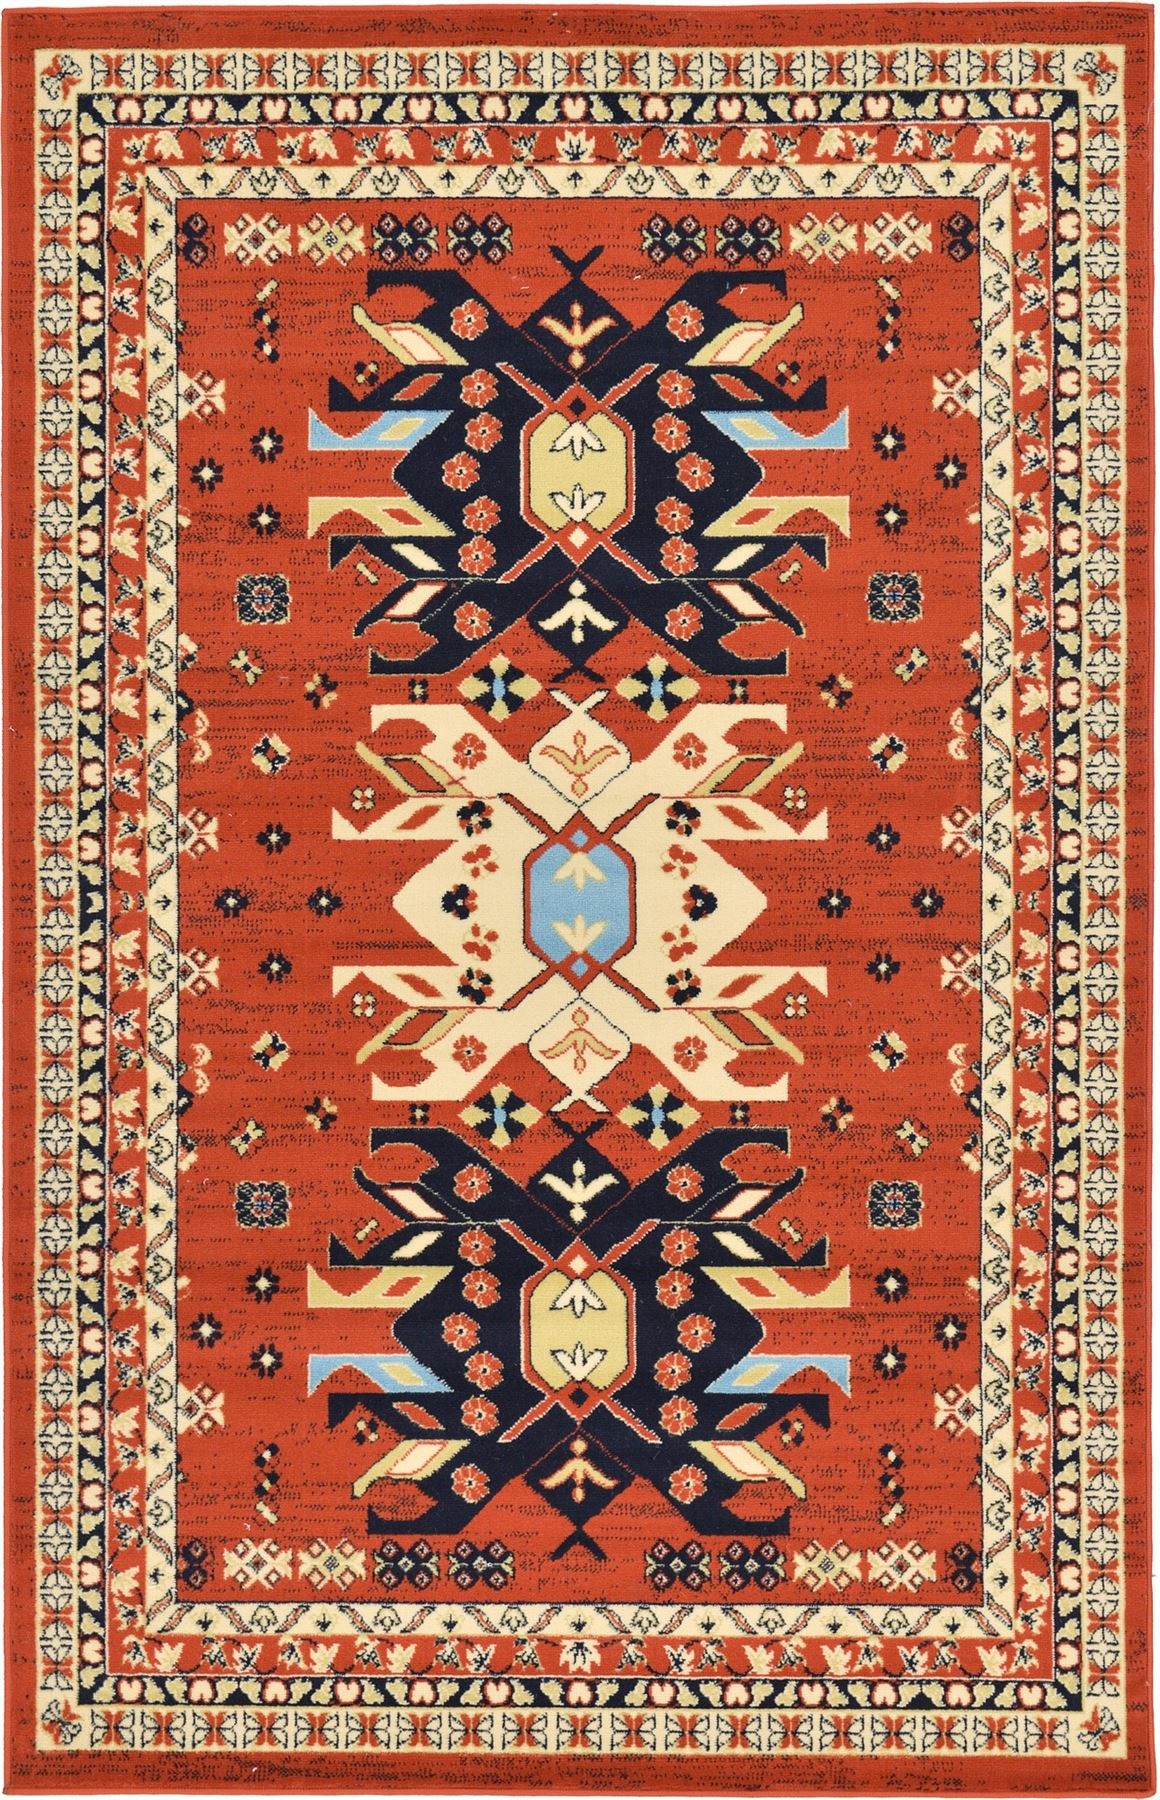 28 Large Hearth Rugs Traditional Persian Design Silk Like